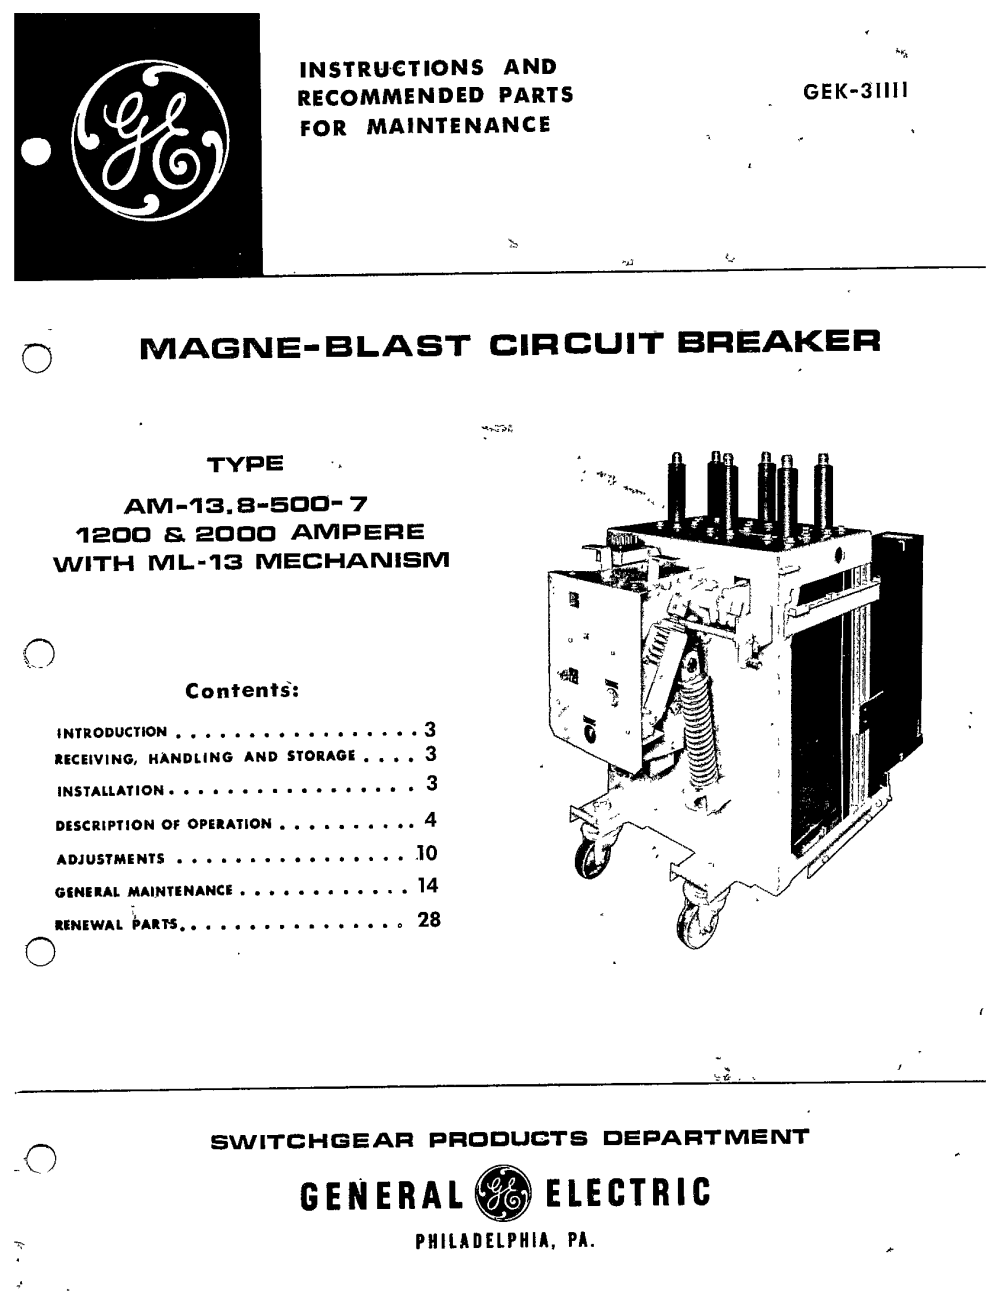 medium resolution of gek 31111 magne blast circuit breaker